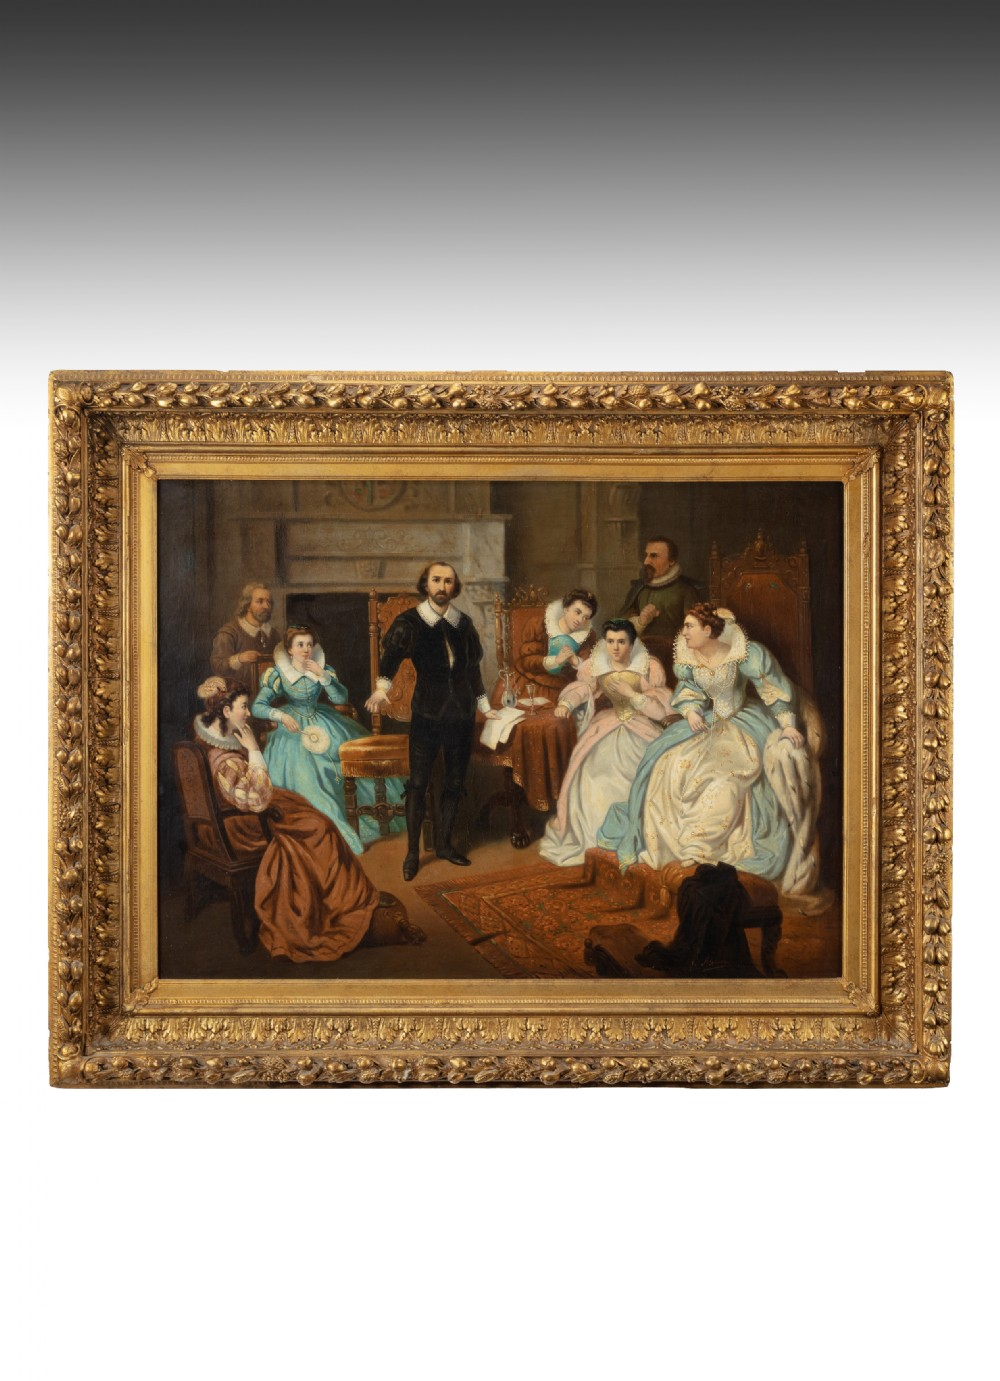 large 19th century british school oil on canvas signed j alvero